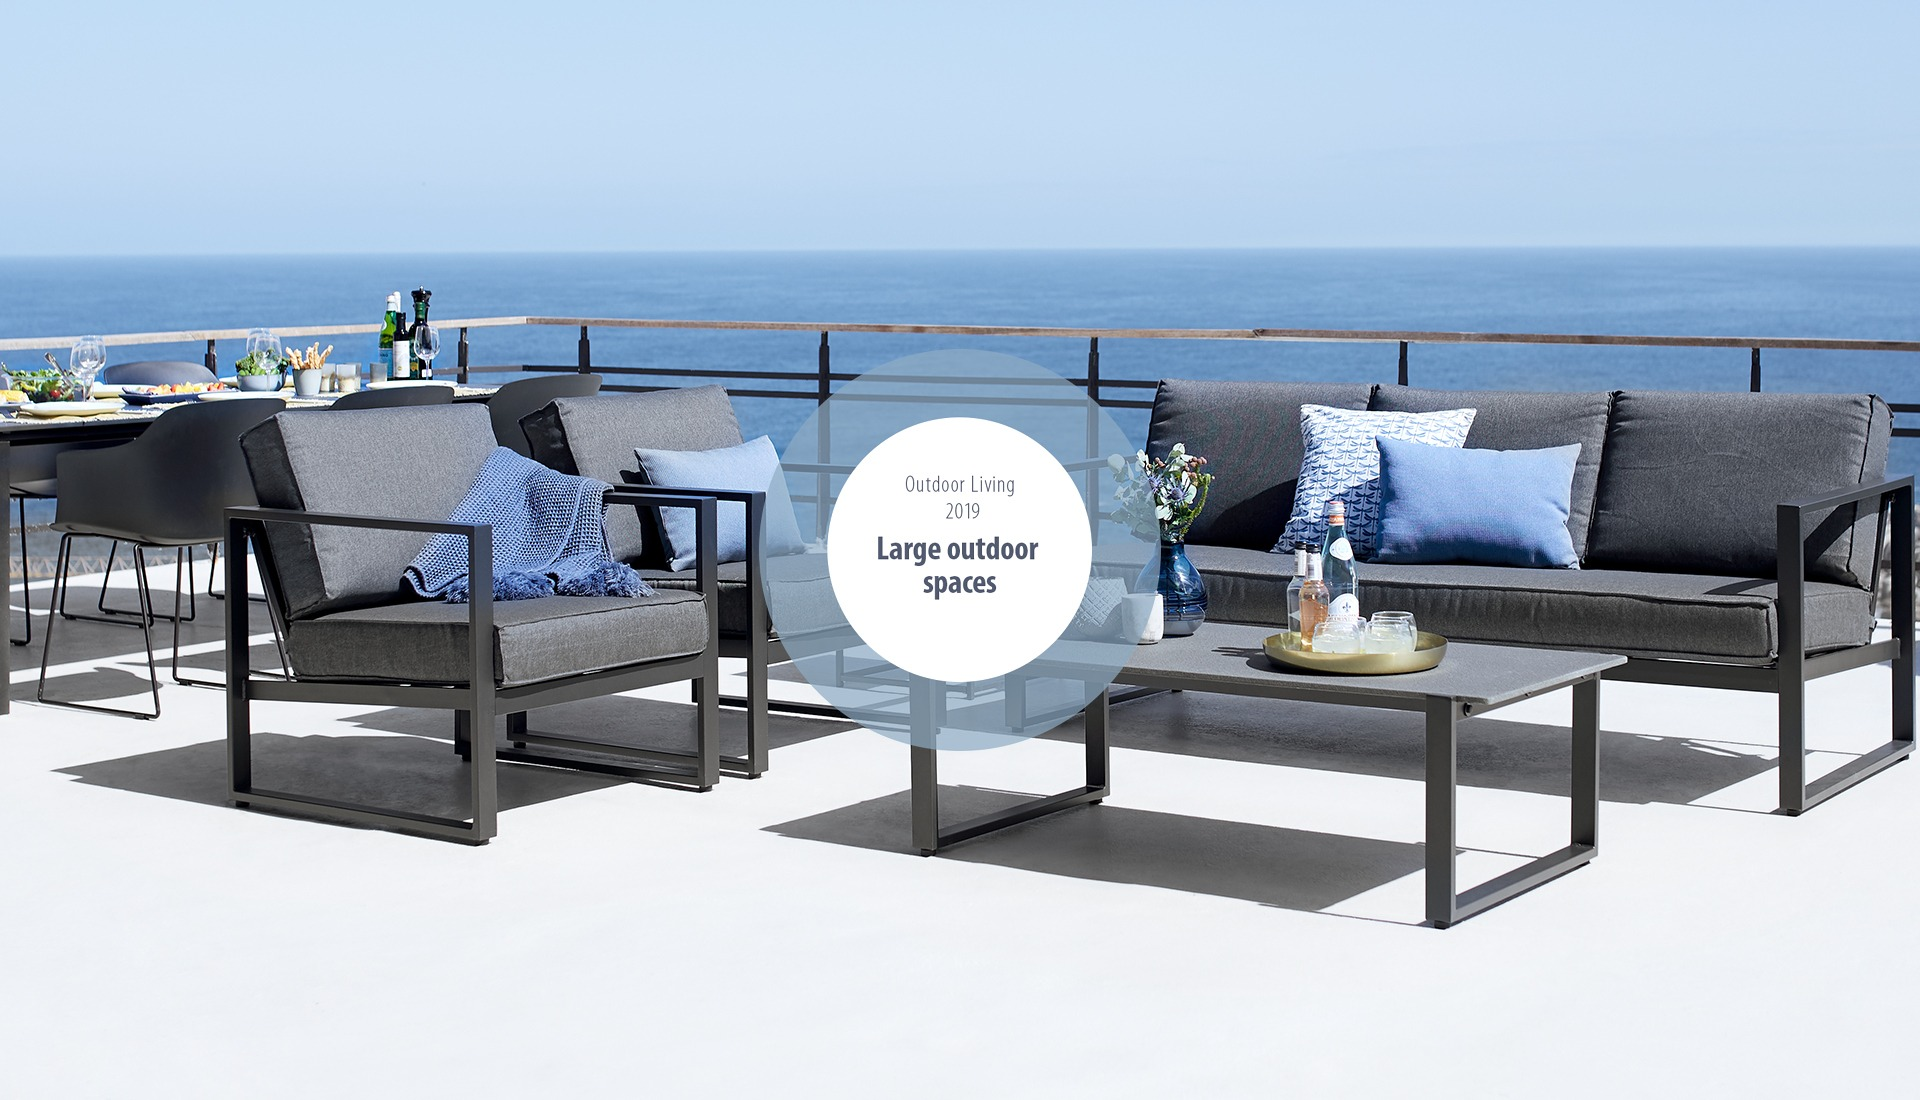 Large Outdoor Spaces Jysk - Jysk Loungers